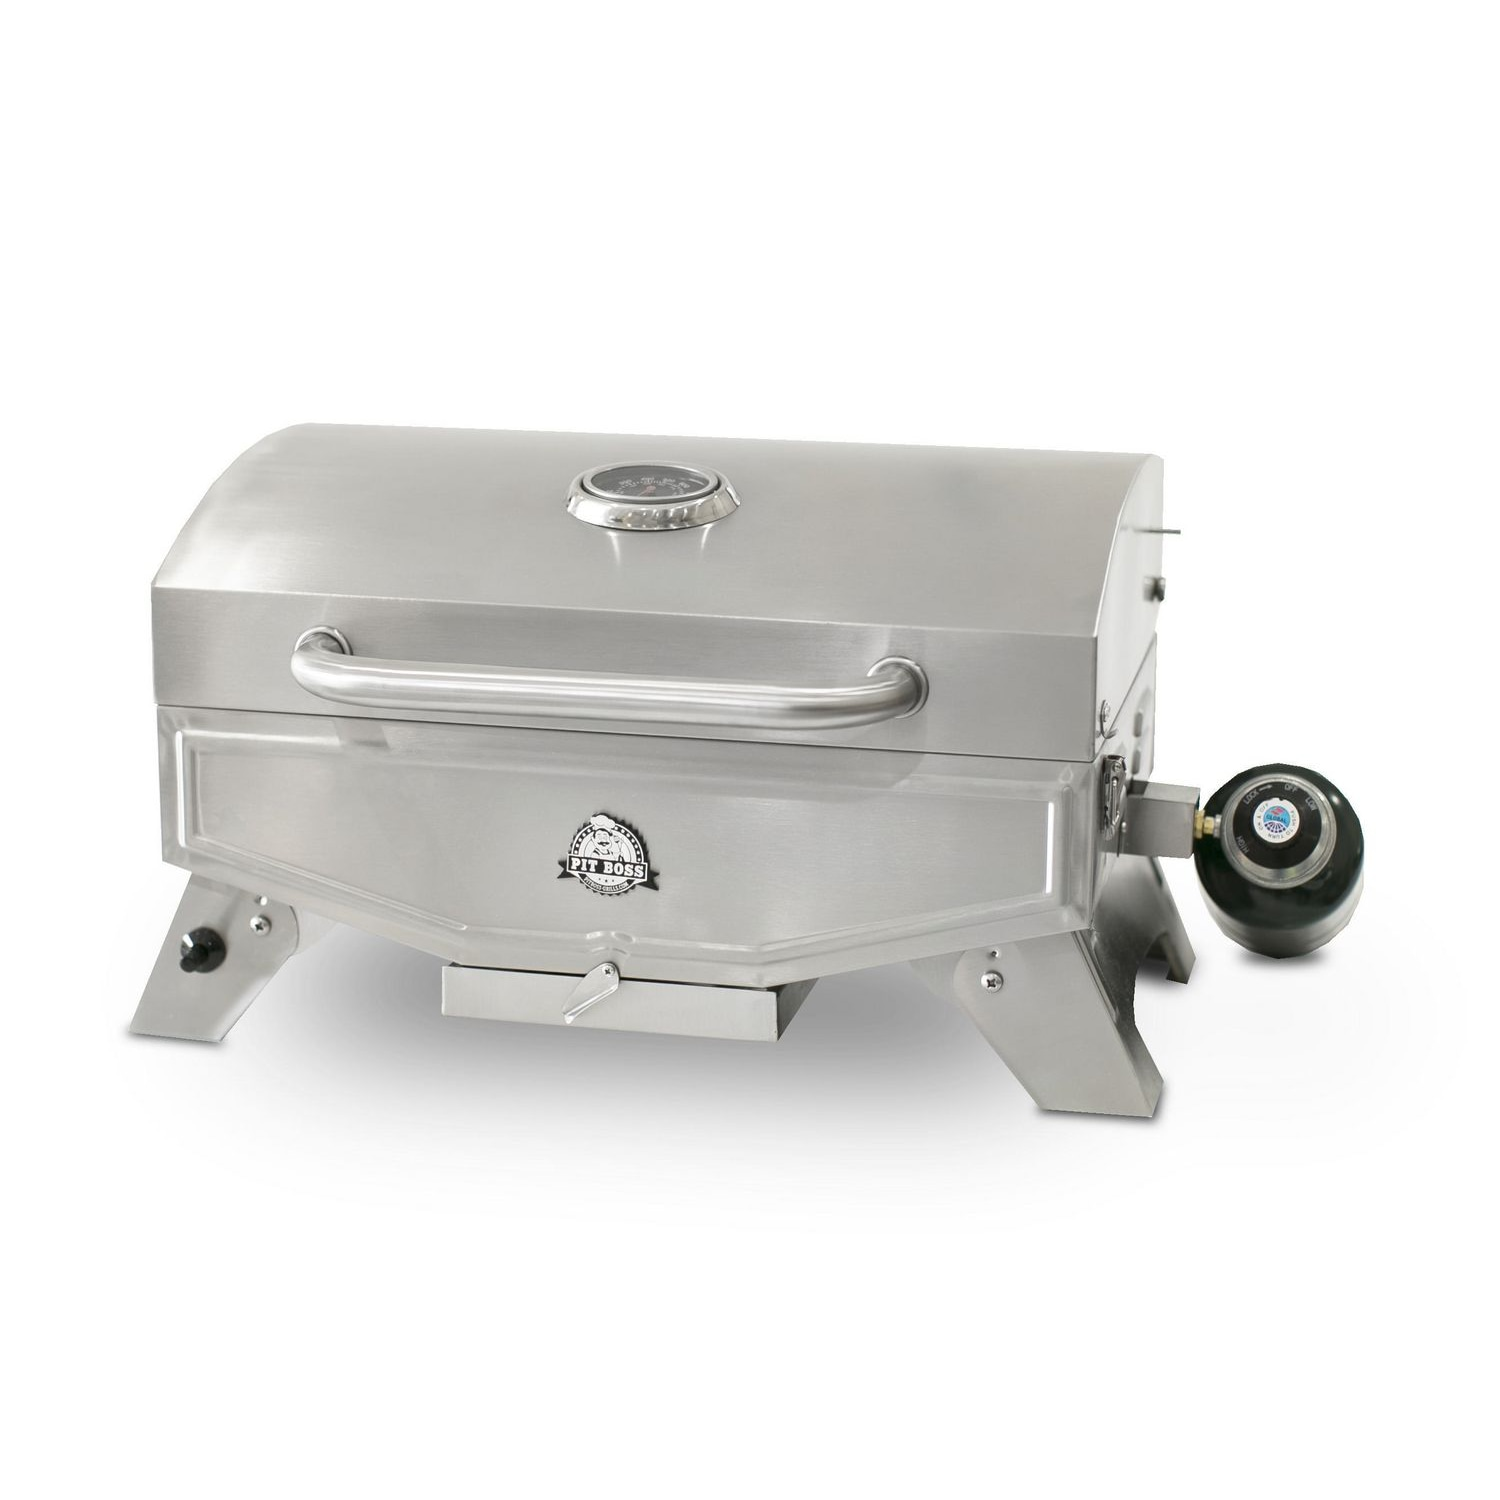 Tabletop Gas Grill